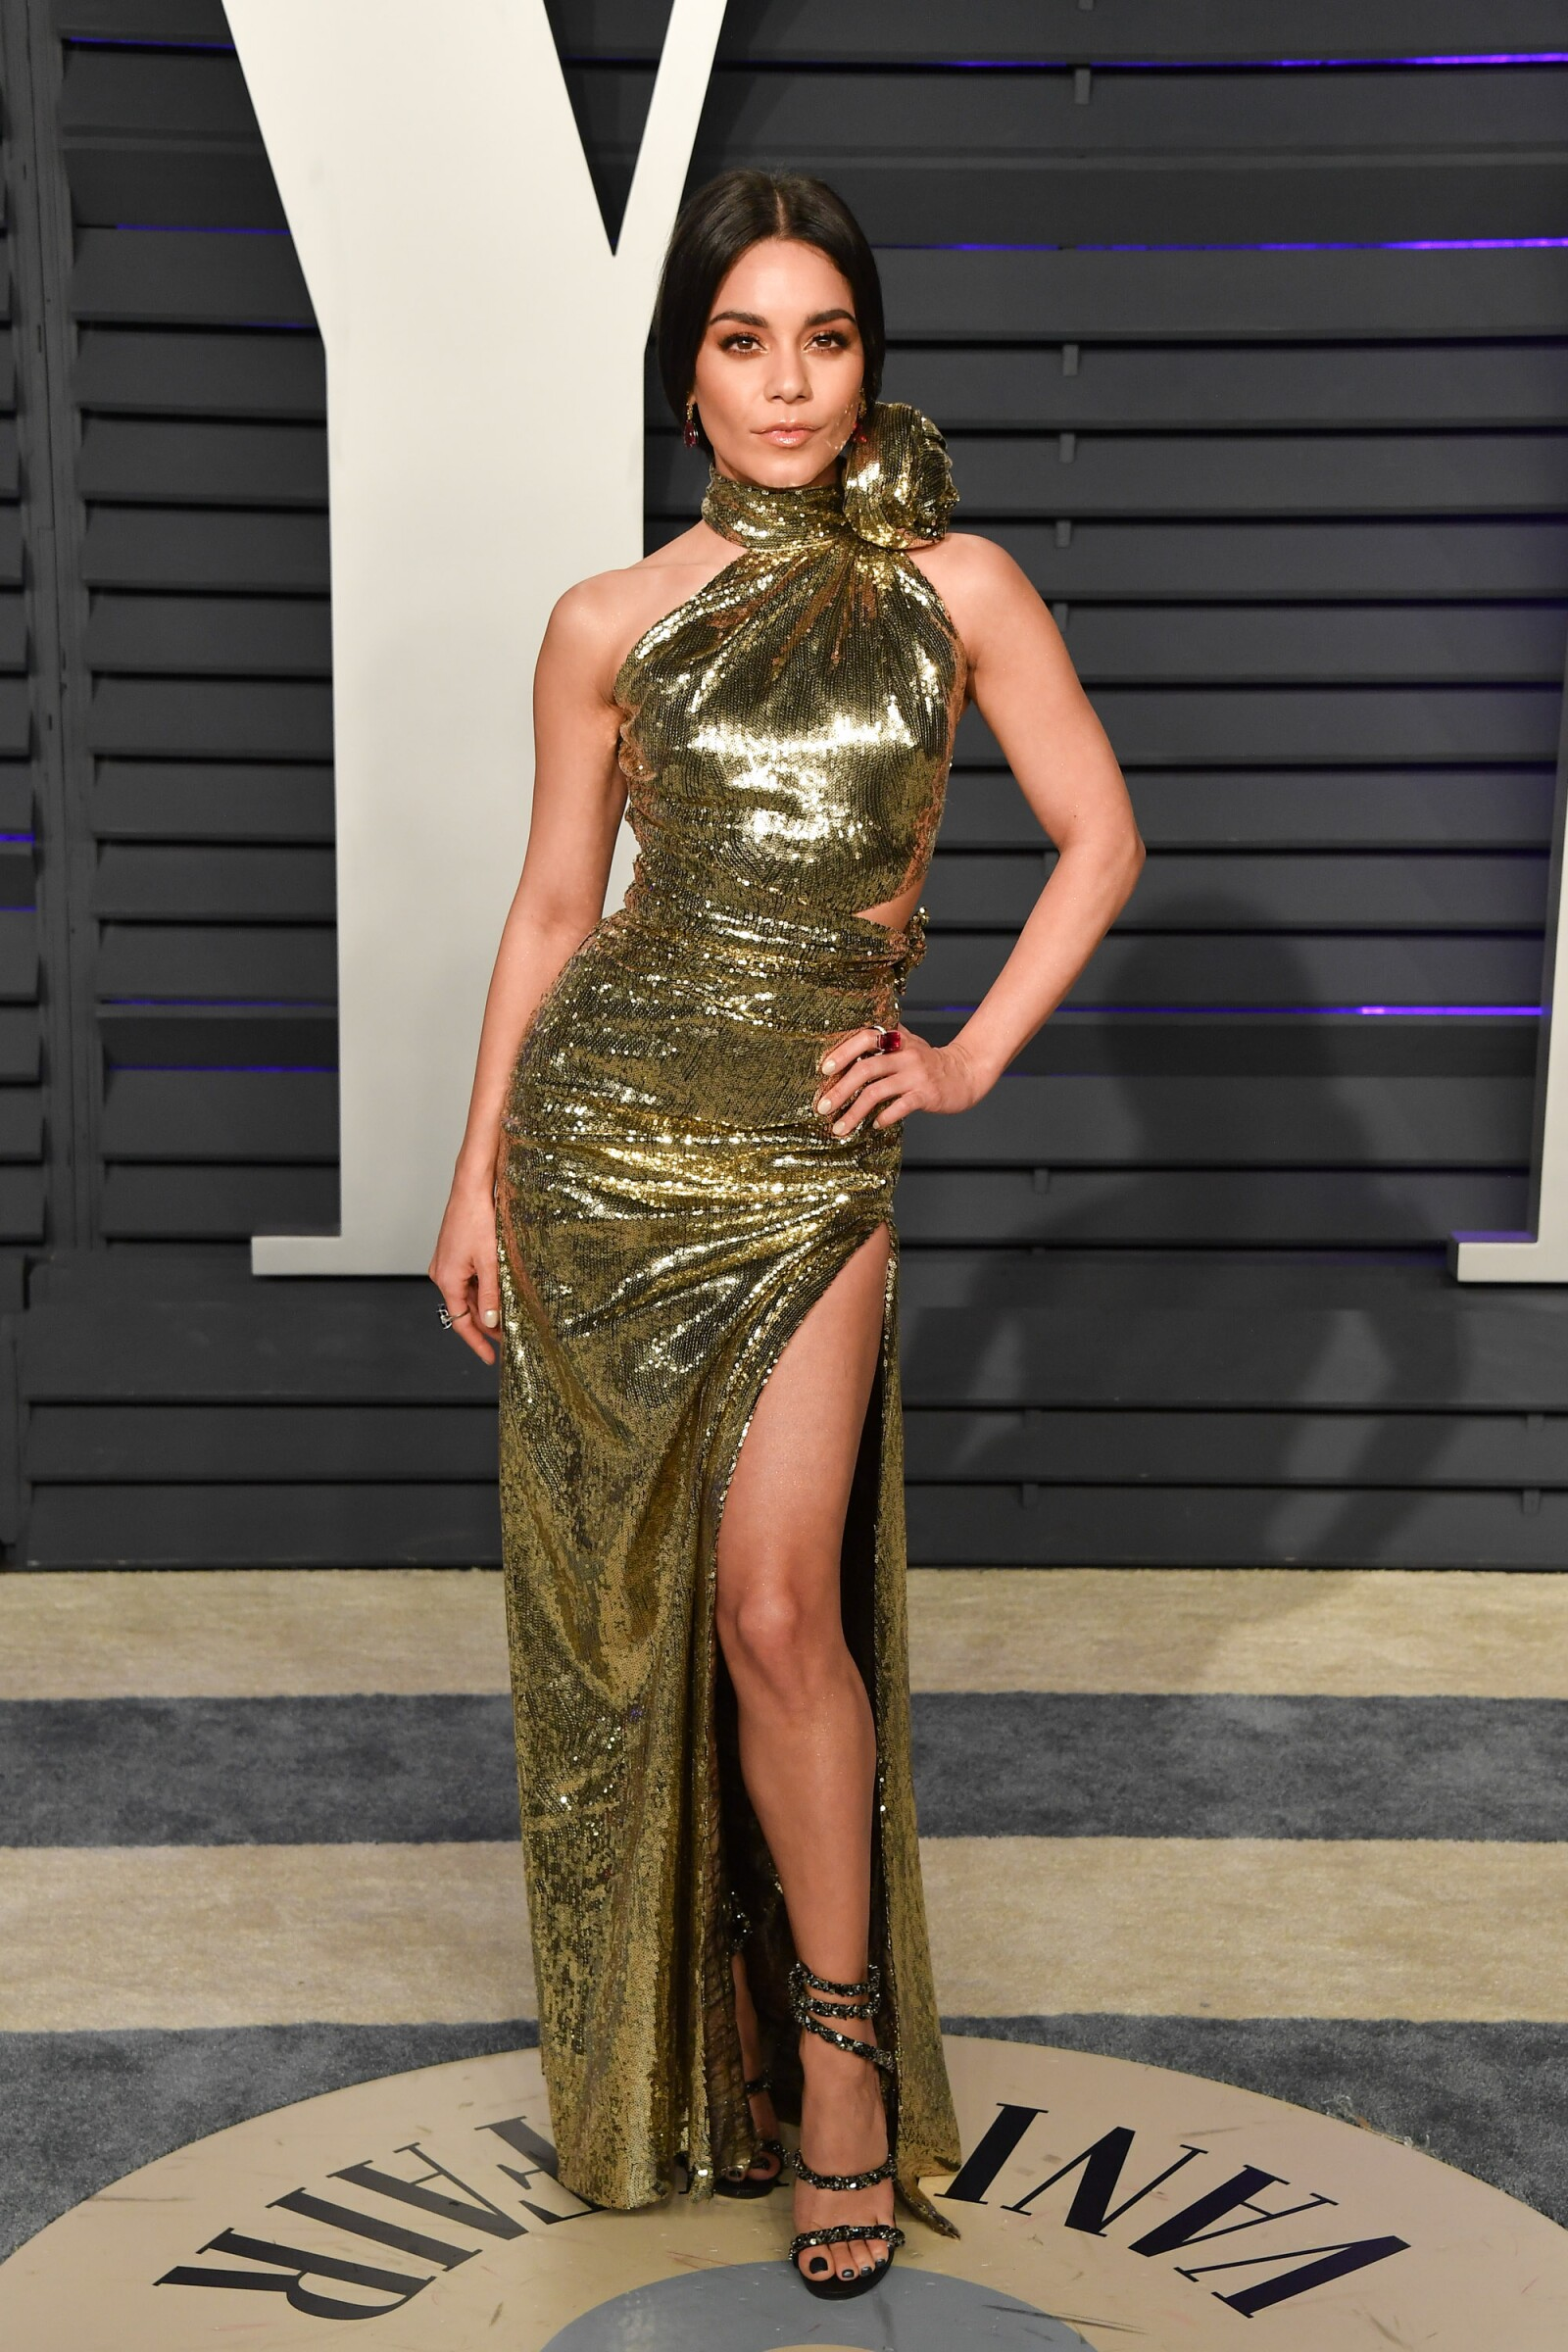 2019 Vanity Fair Oscar Party Hosted By Radhika Jones - Arrivals